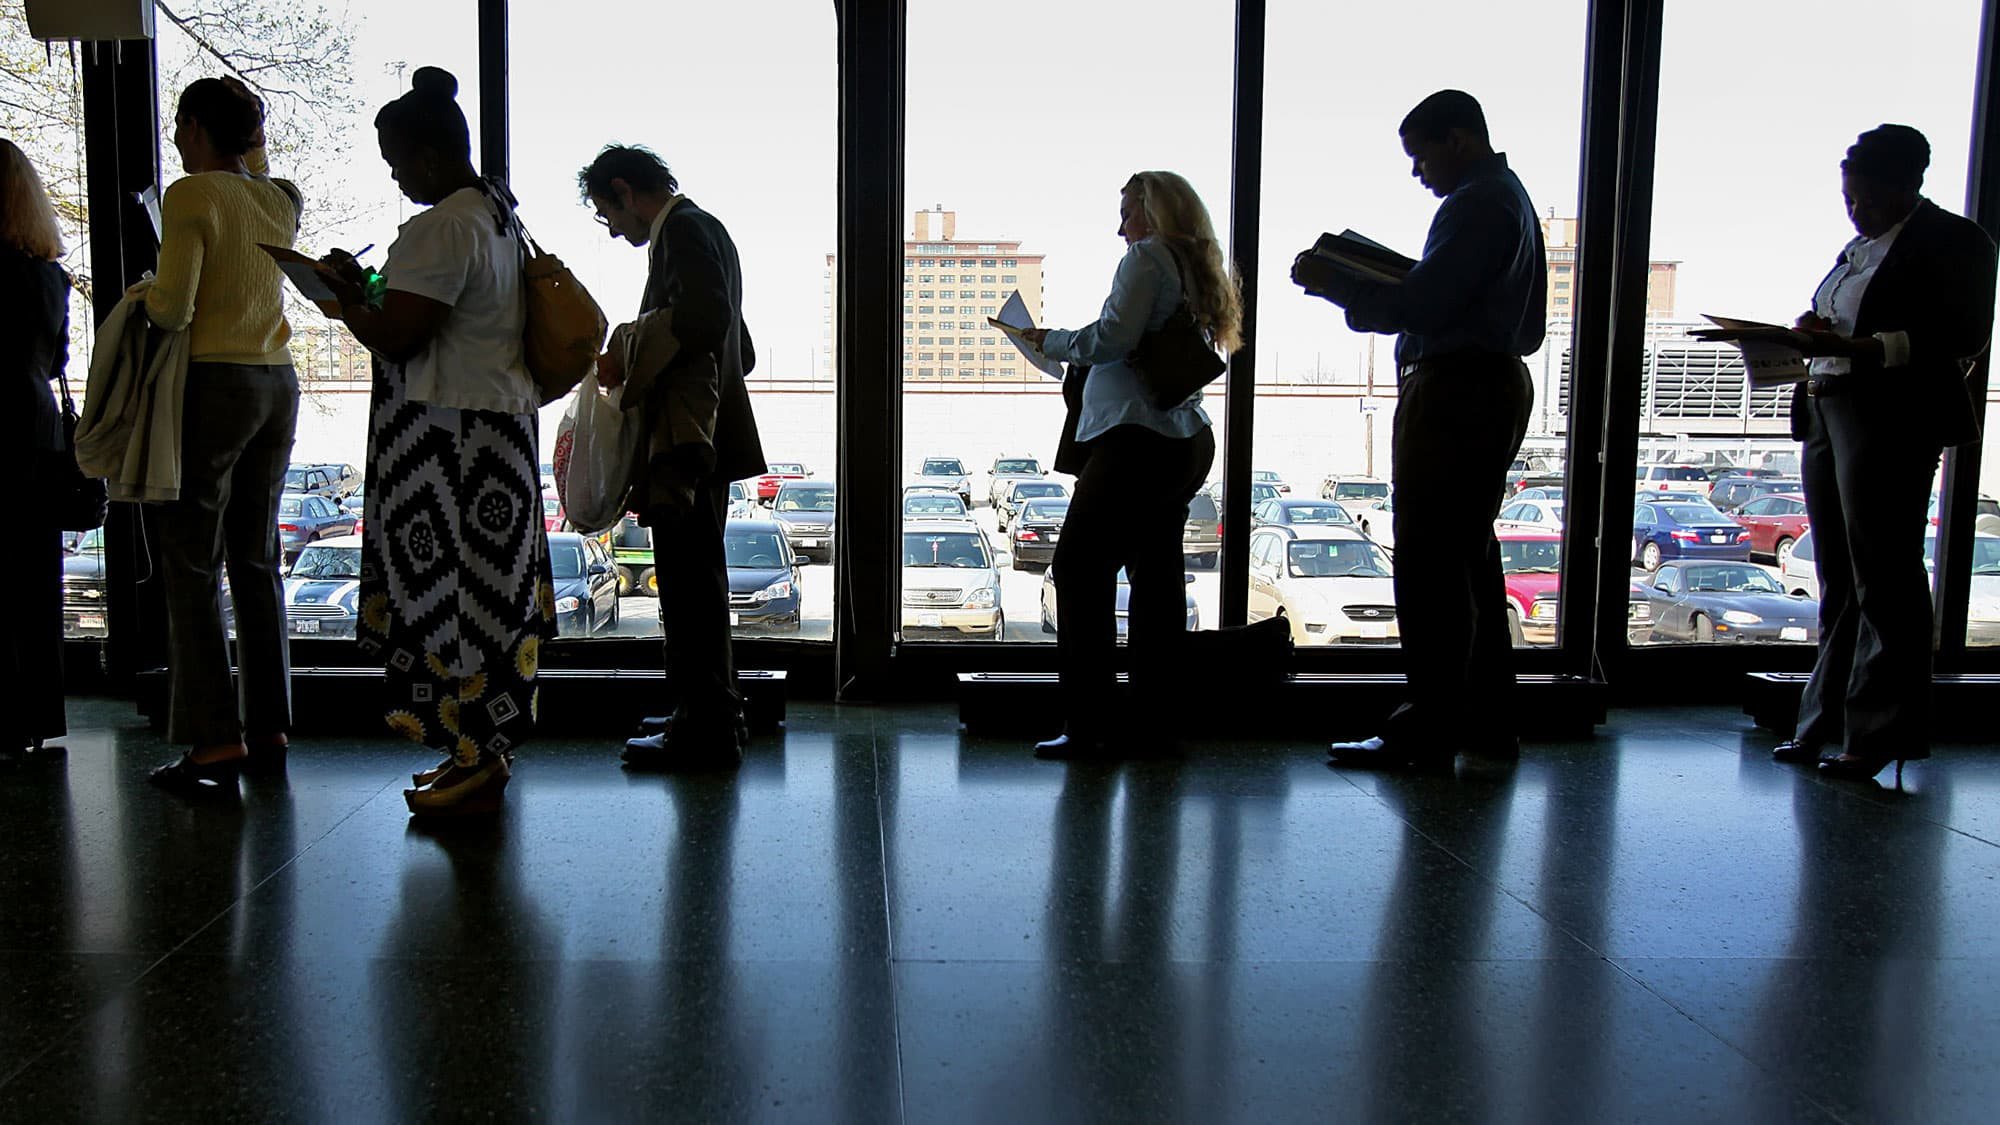 Weekly jobless claims post sharp drop to 310,000, another new pandemic low